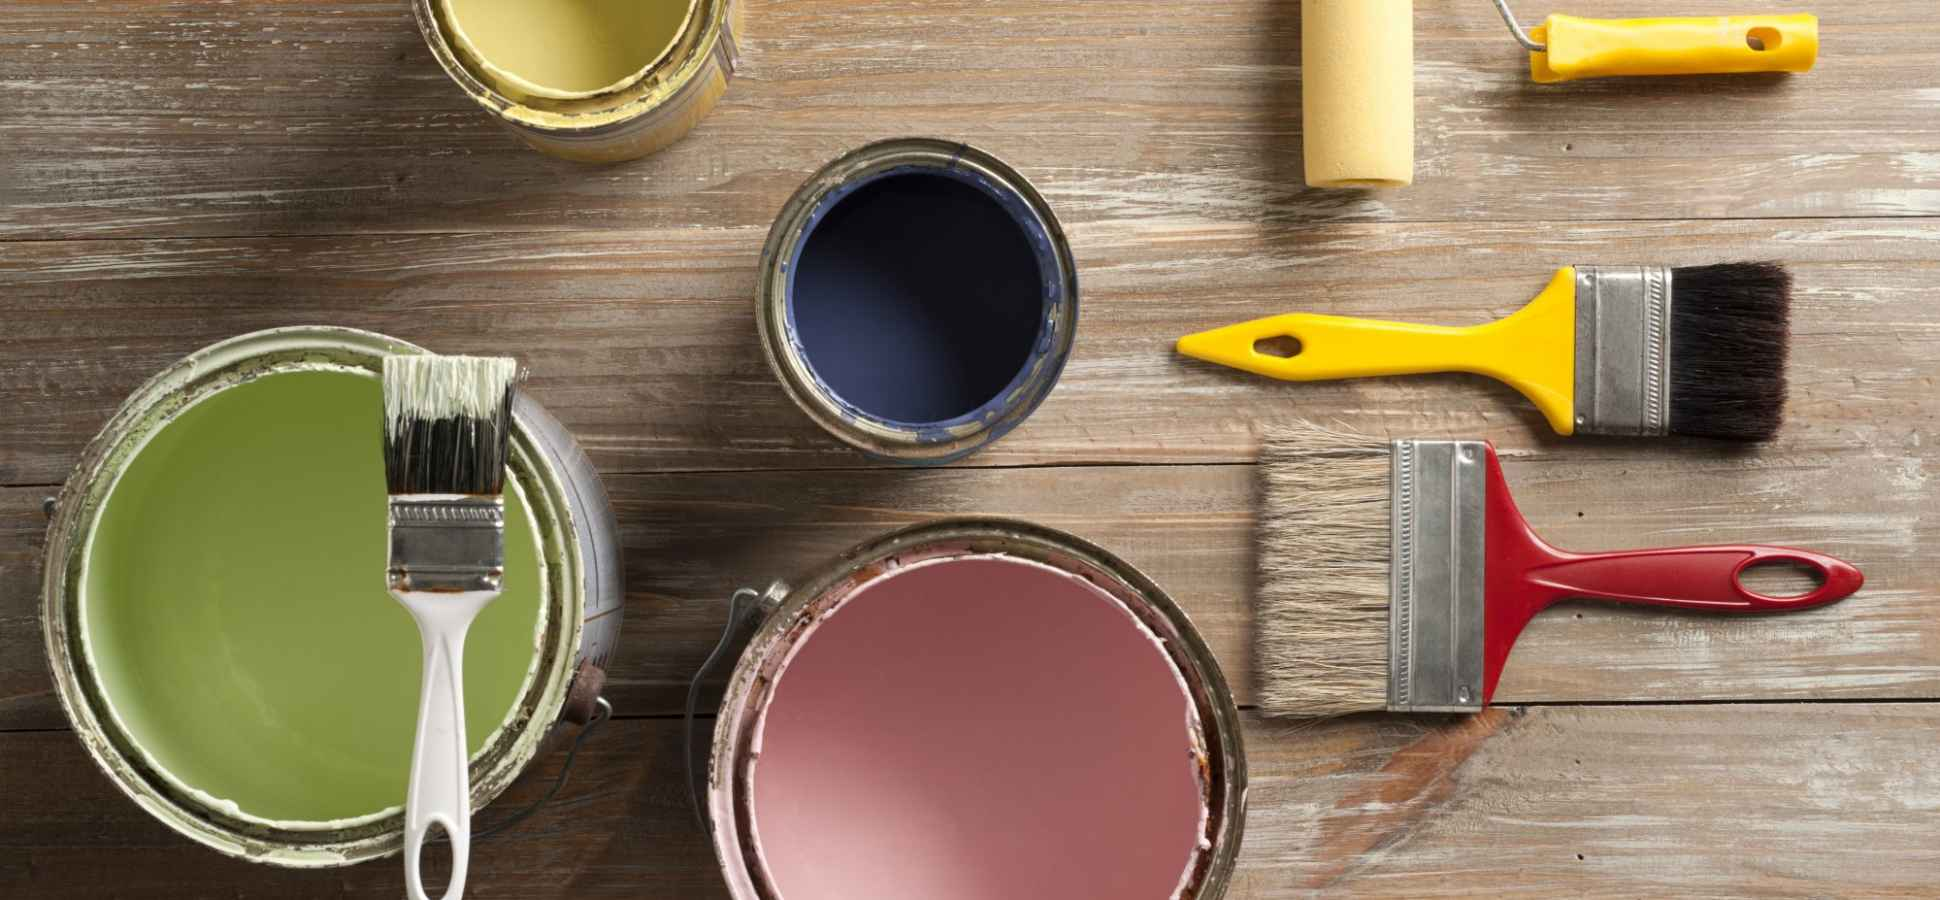 Why Now Is the Best Time to Start a DIY Home-Based Business